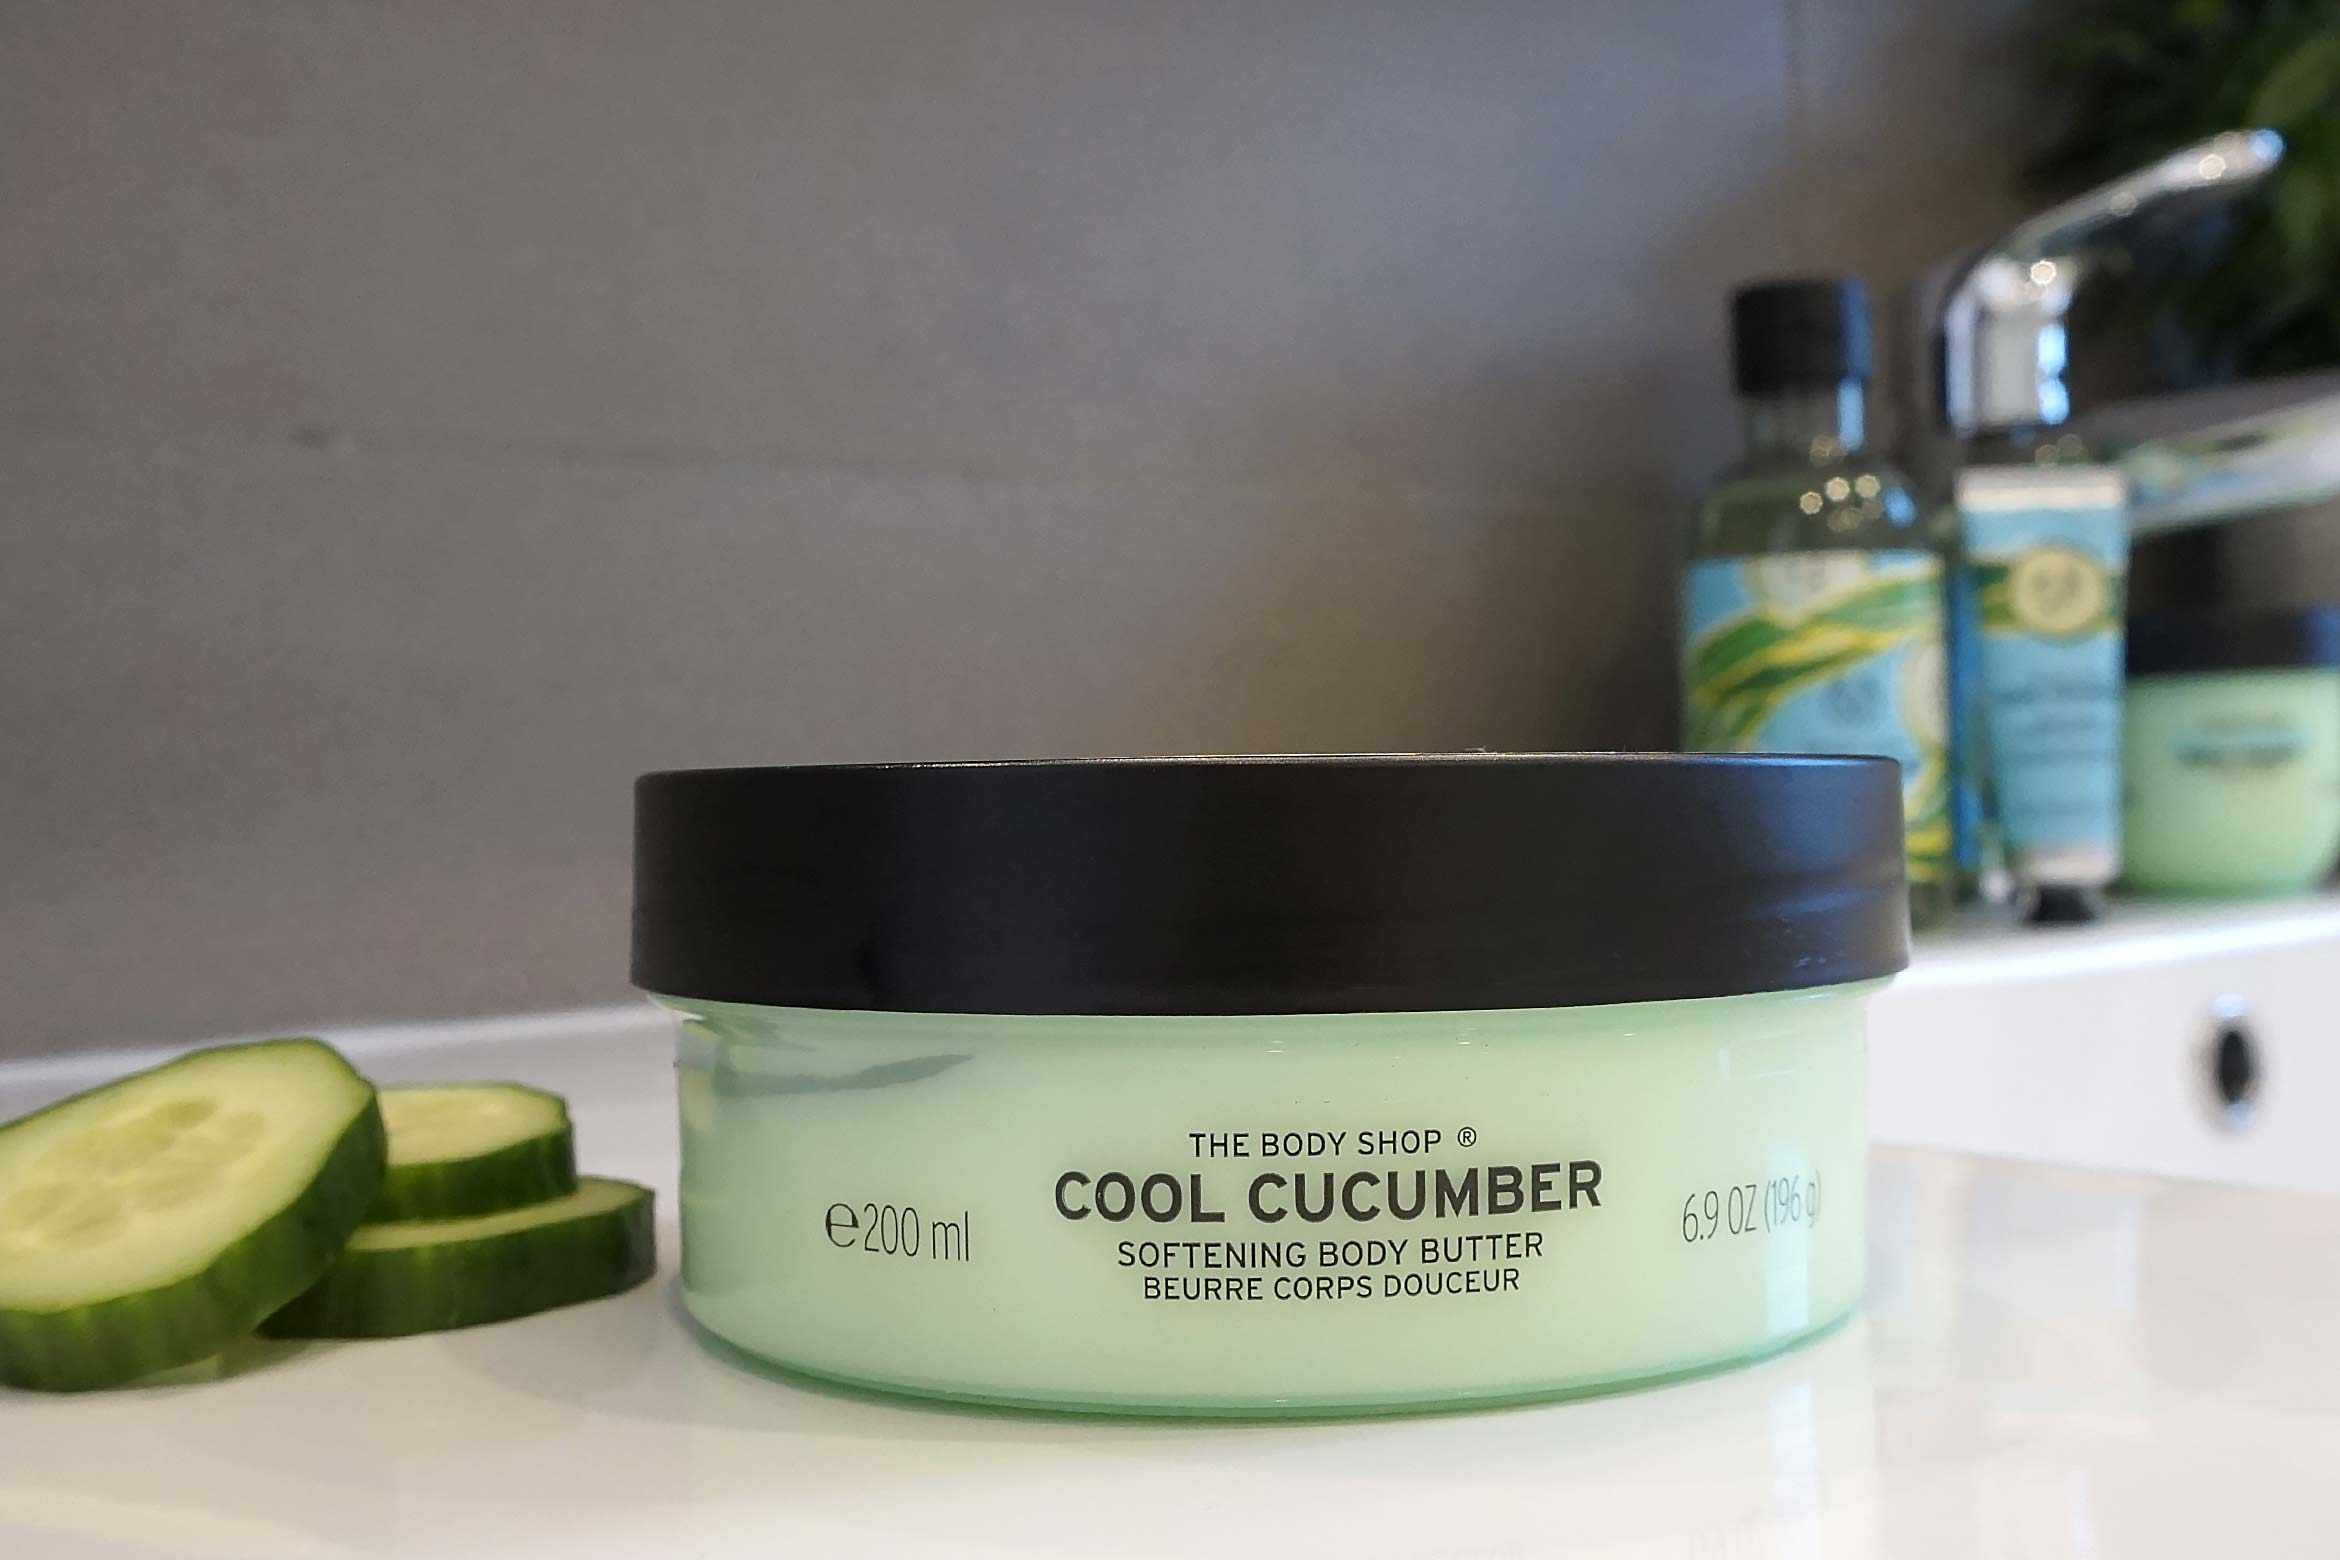 the body shop cool cucumber body butter review